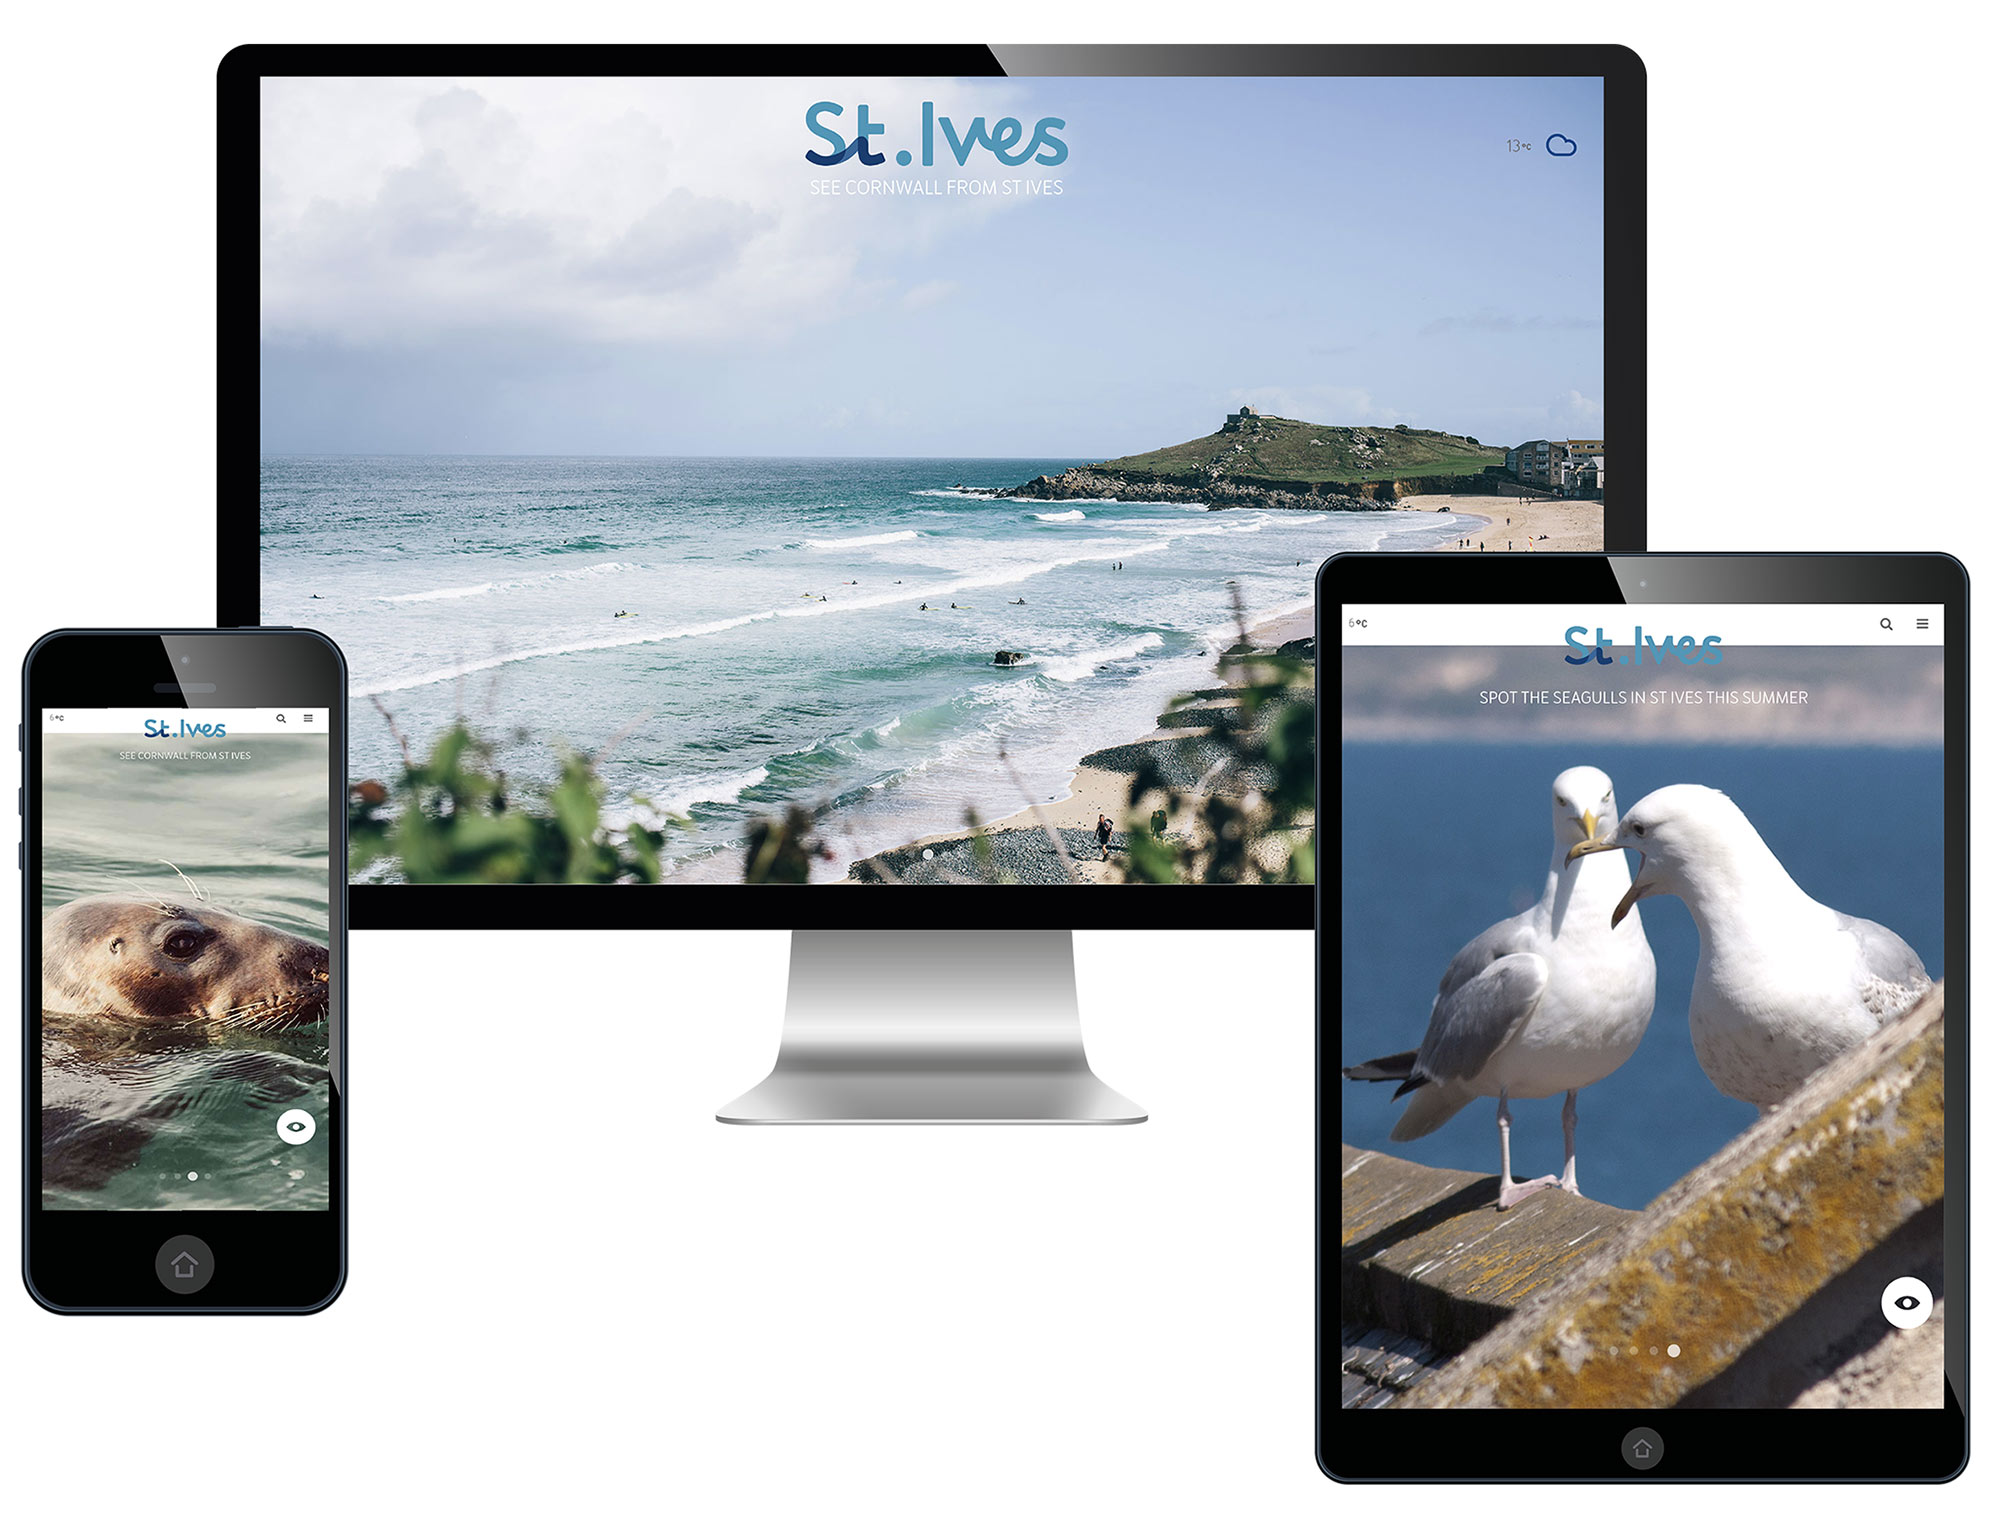 St Ives Destination Website with St Ives Tourism Association